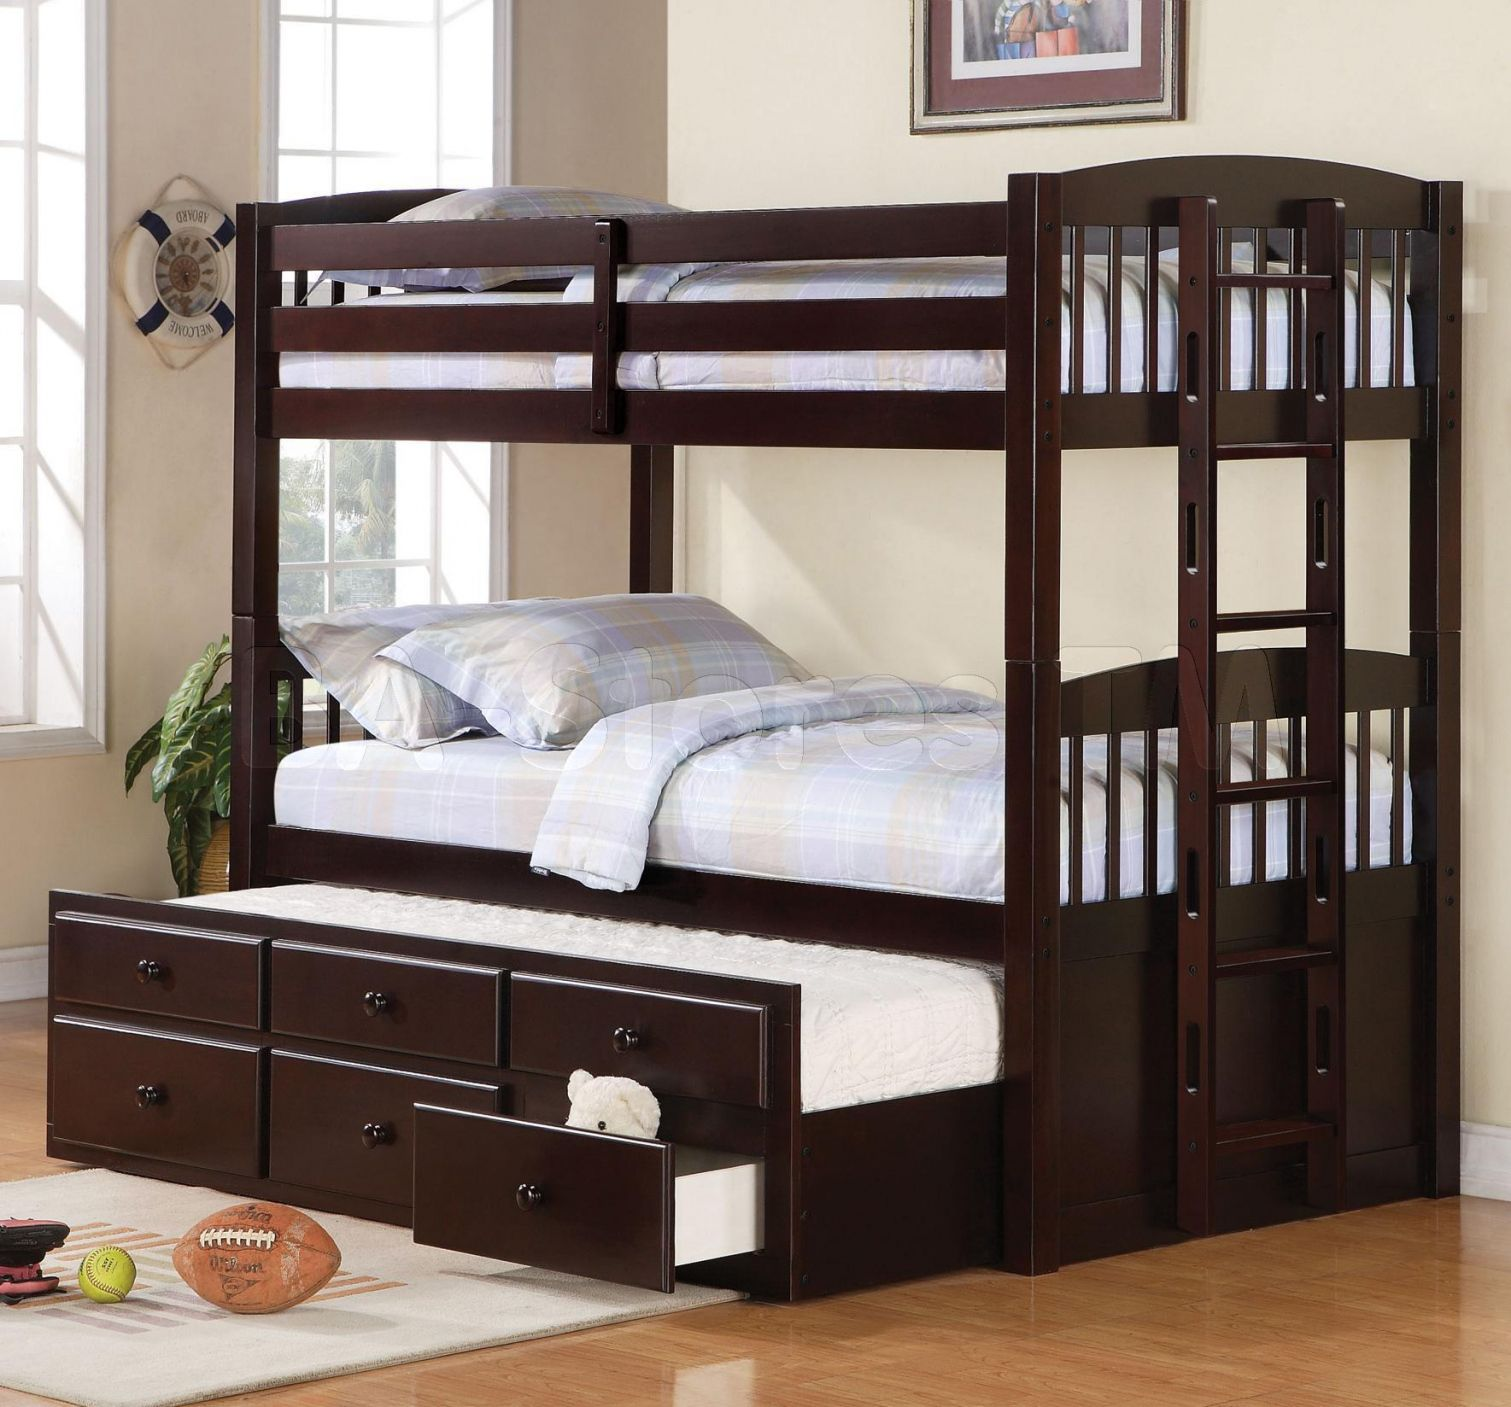 30 Bunk Bed with Pull Out Double Interior Design Bedroom Ideas A Bud Check